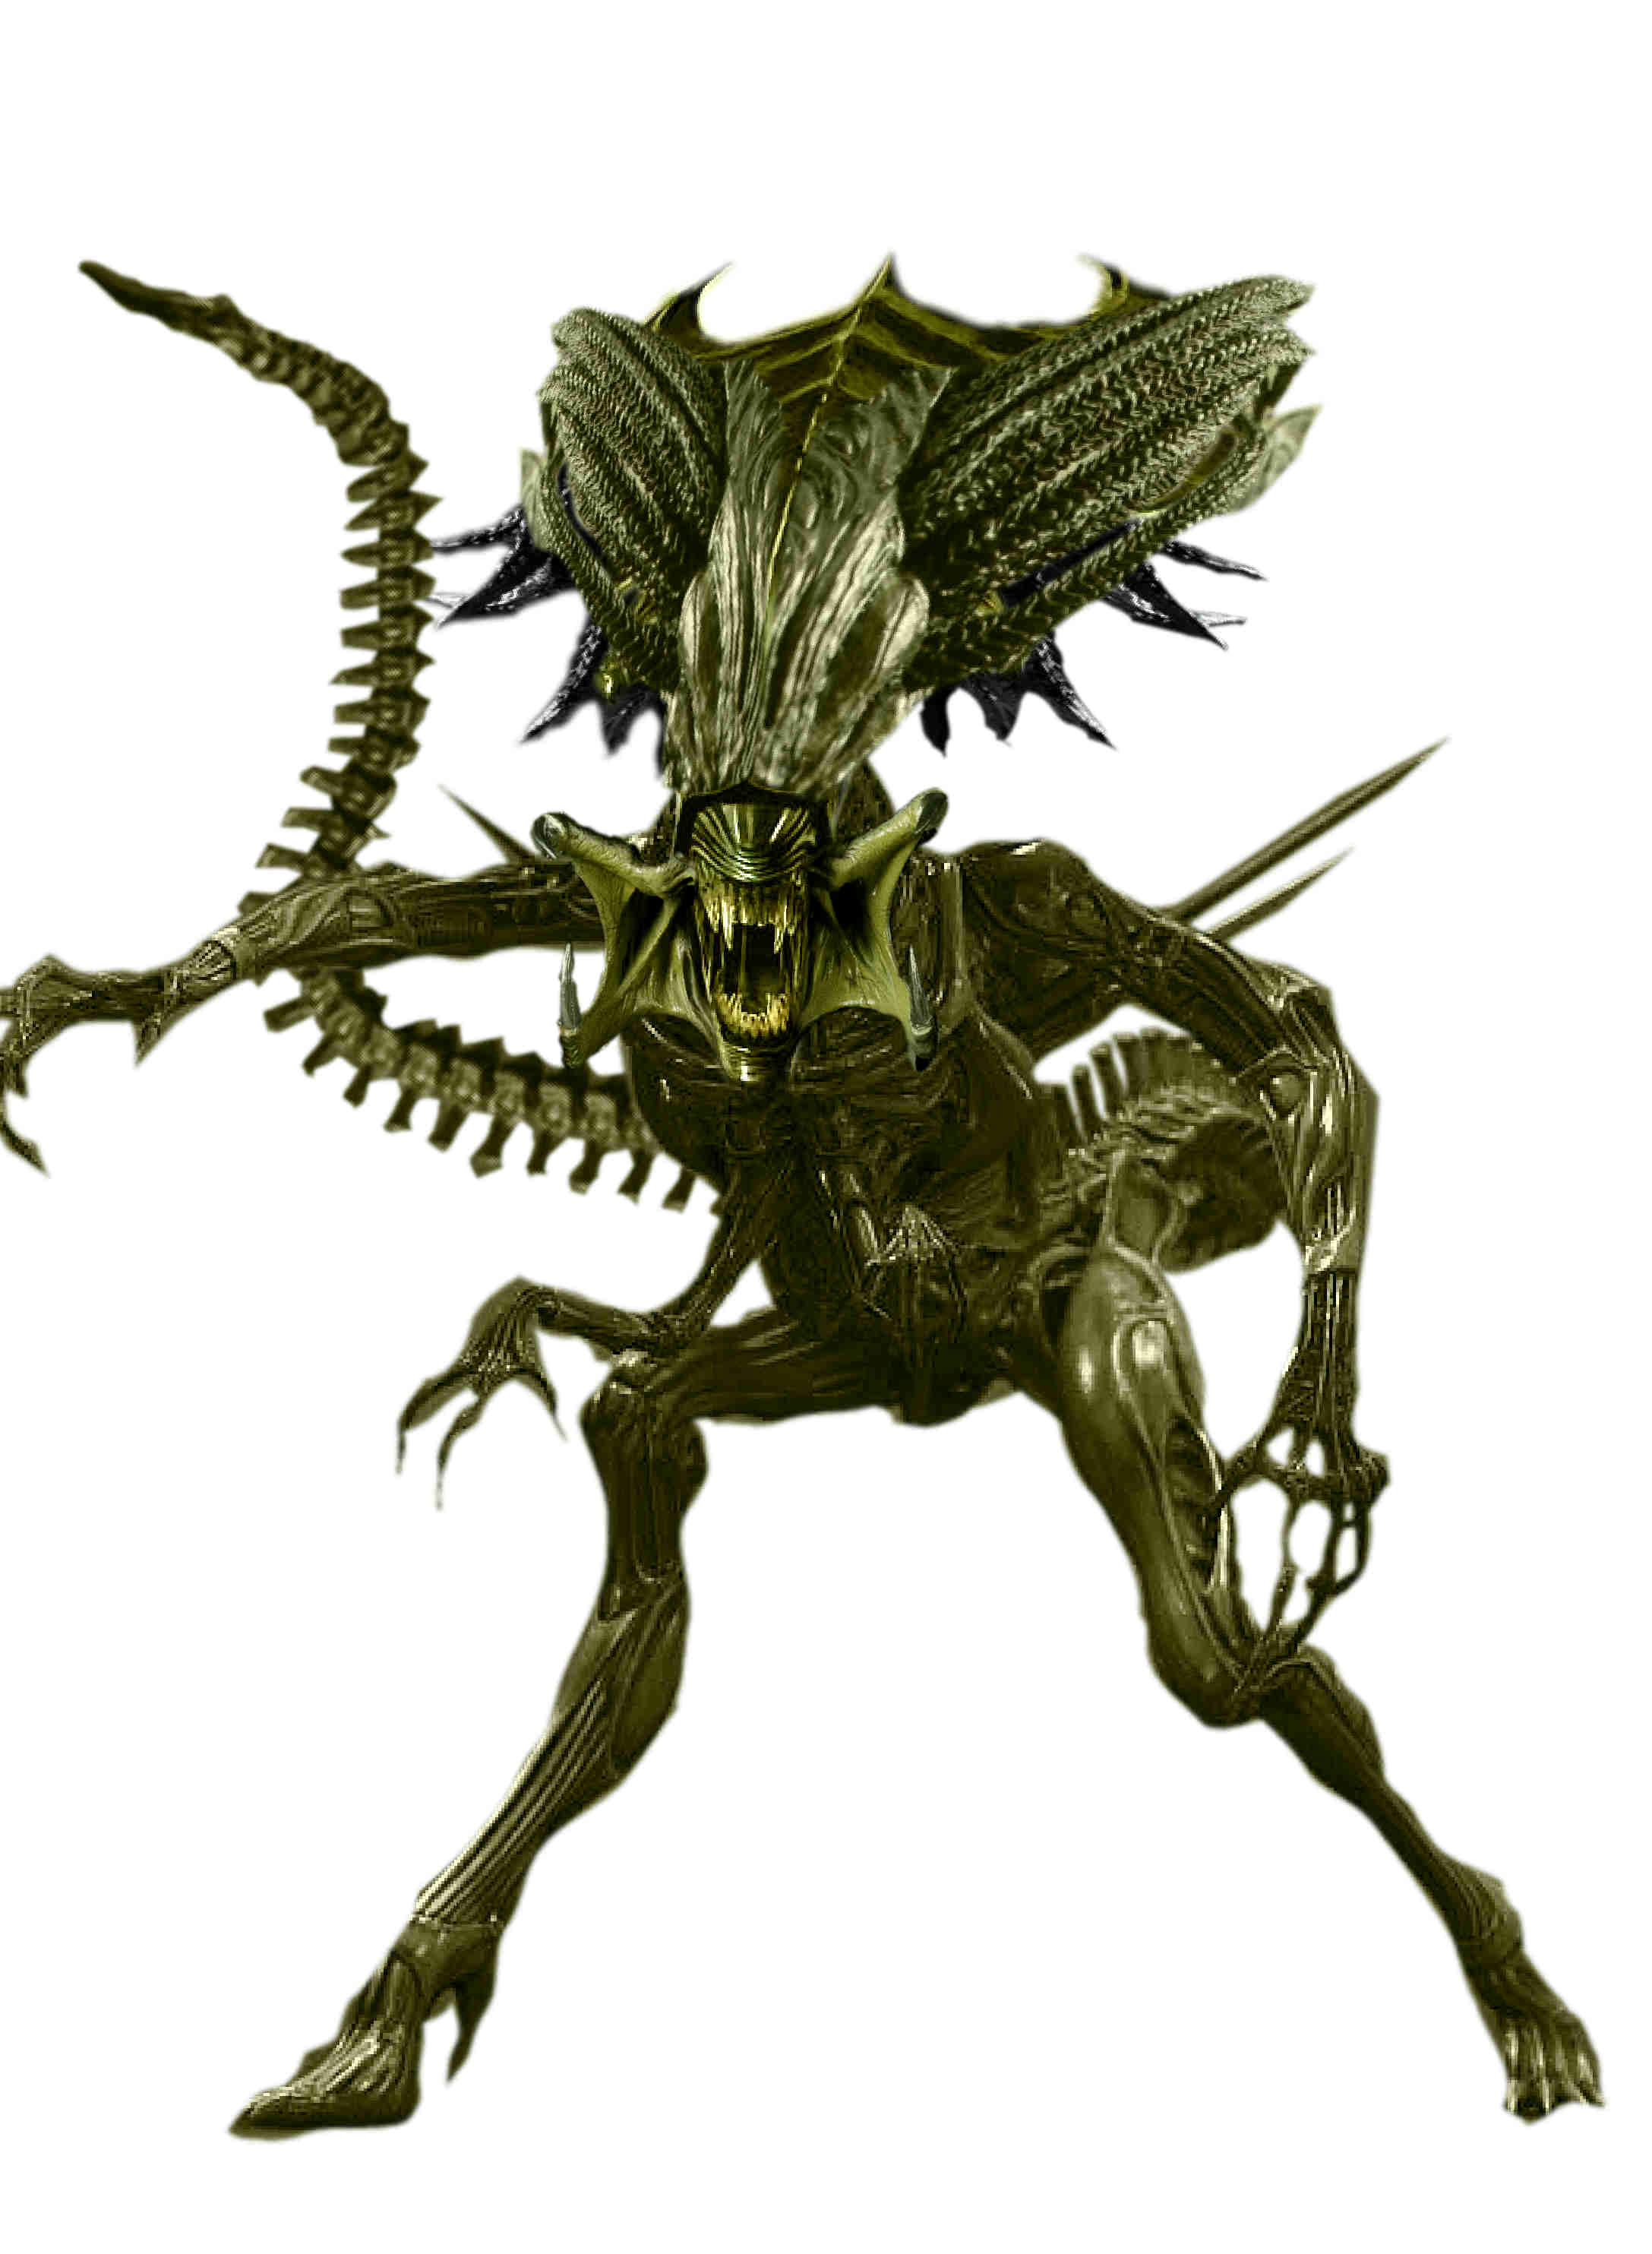 Underworld vs. Alien: Predalien vs. Werevampire - Battles ...